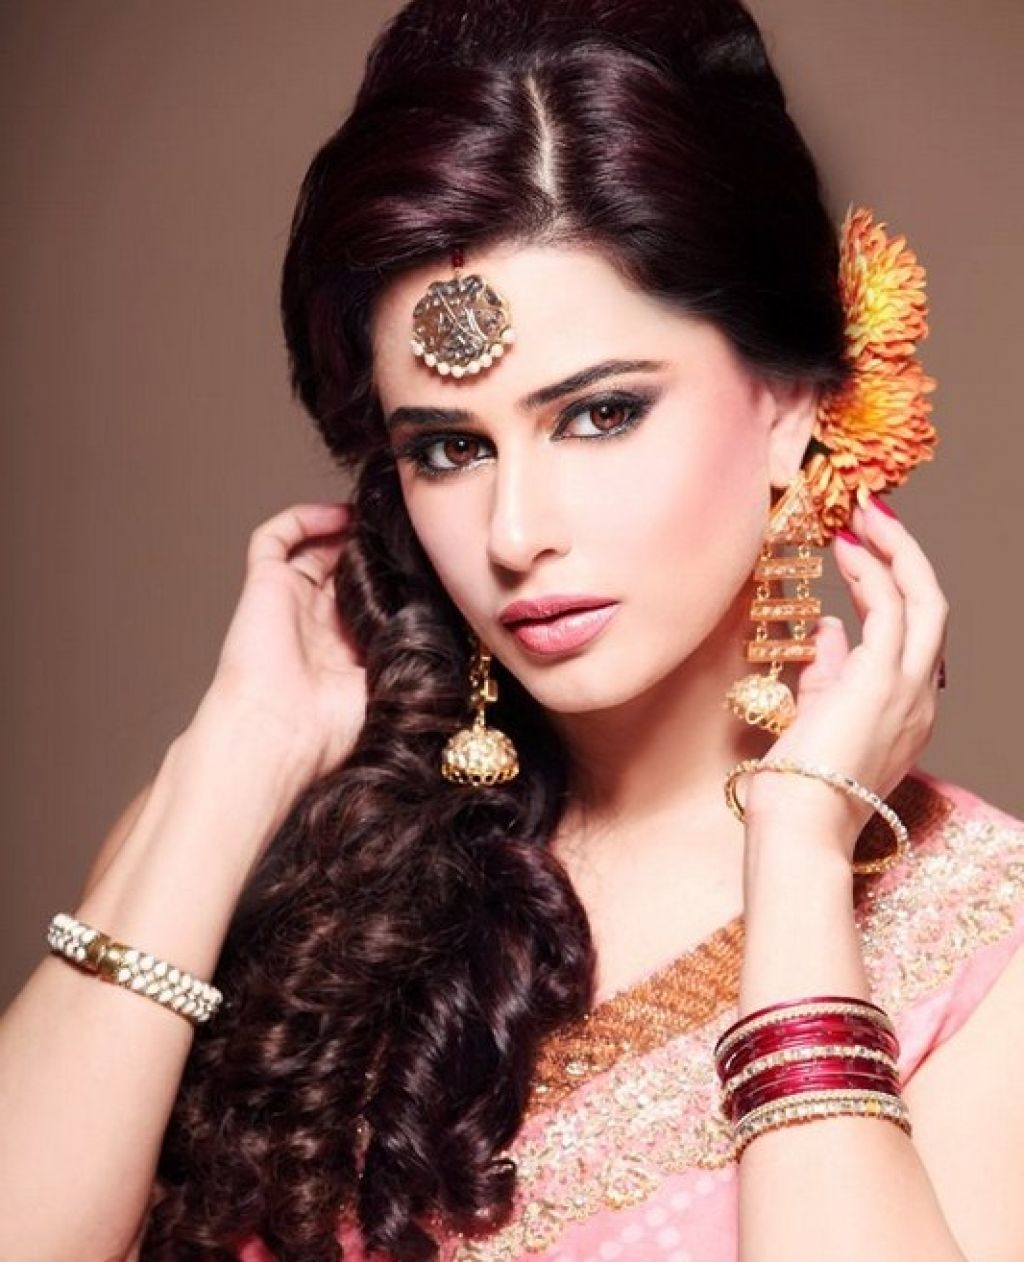 Hairstyles Pakistani Waleema: Pakistani Wedding Hairstyles For Long Hair